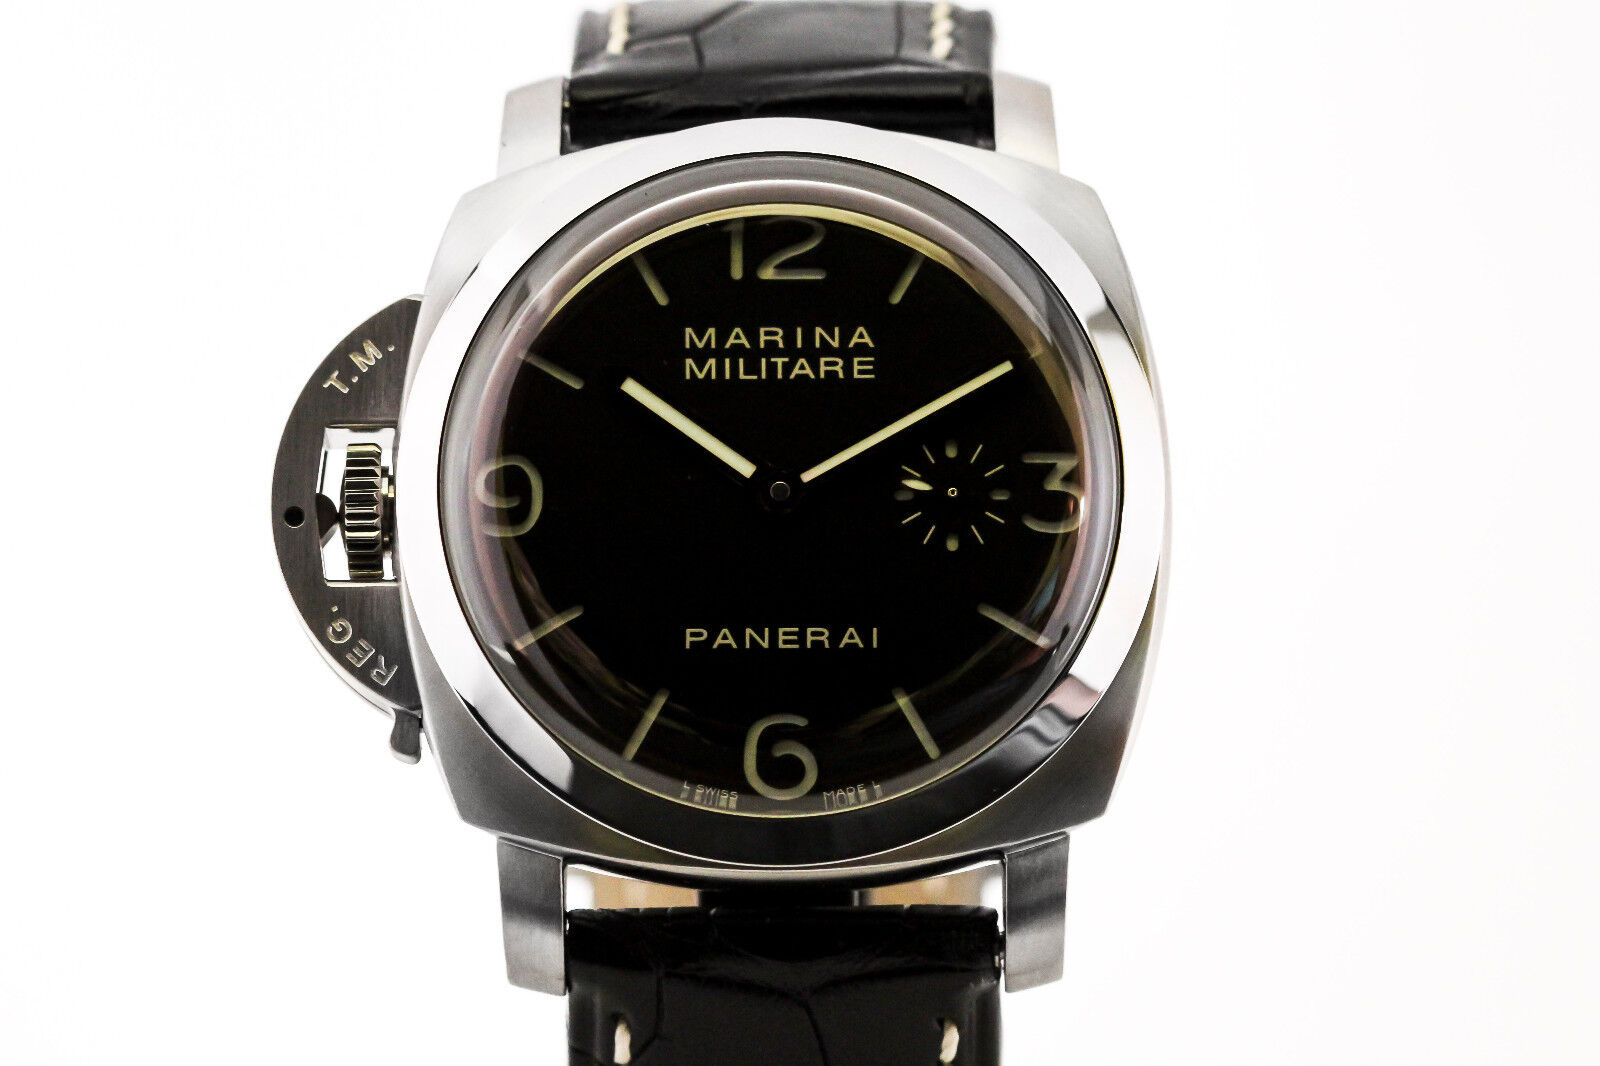 Panerai 1950 Marina Militare Destro PAM 217 47mm Lefty Special Edition Watch - watch picture 1